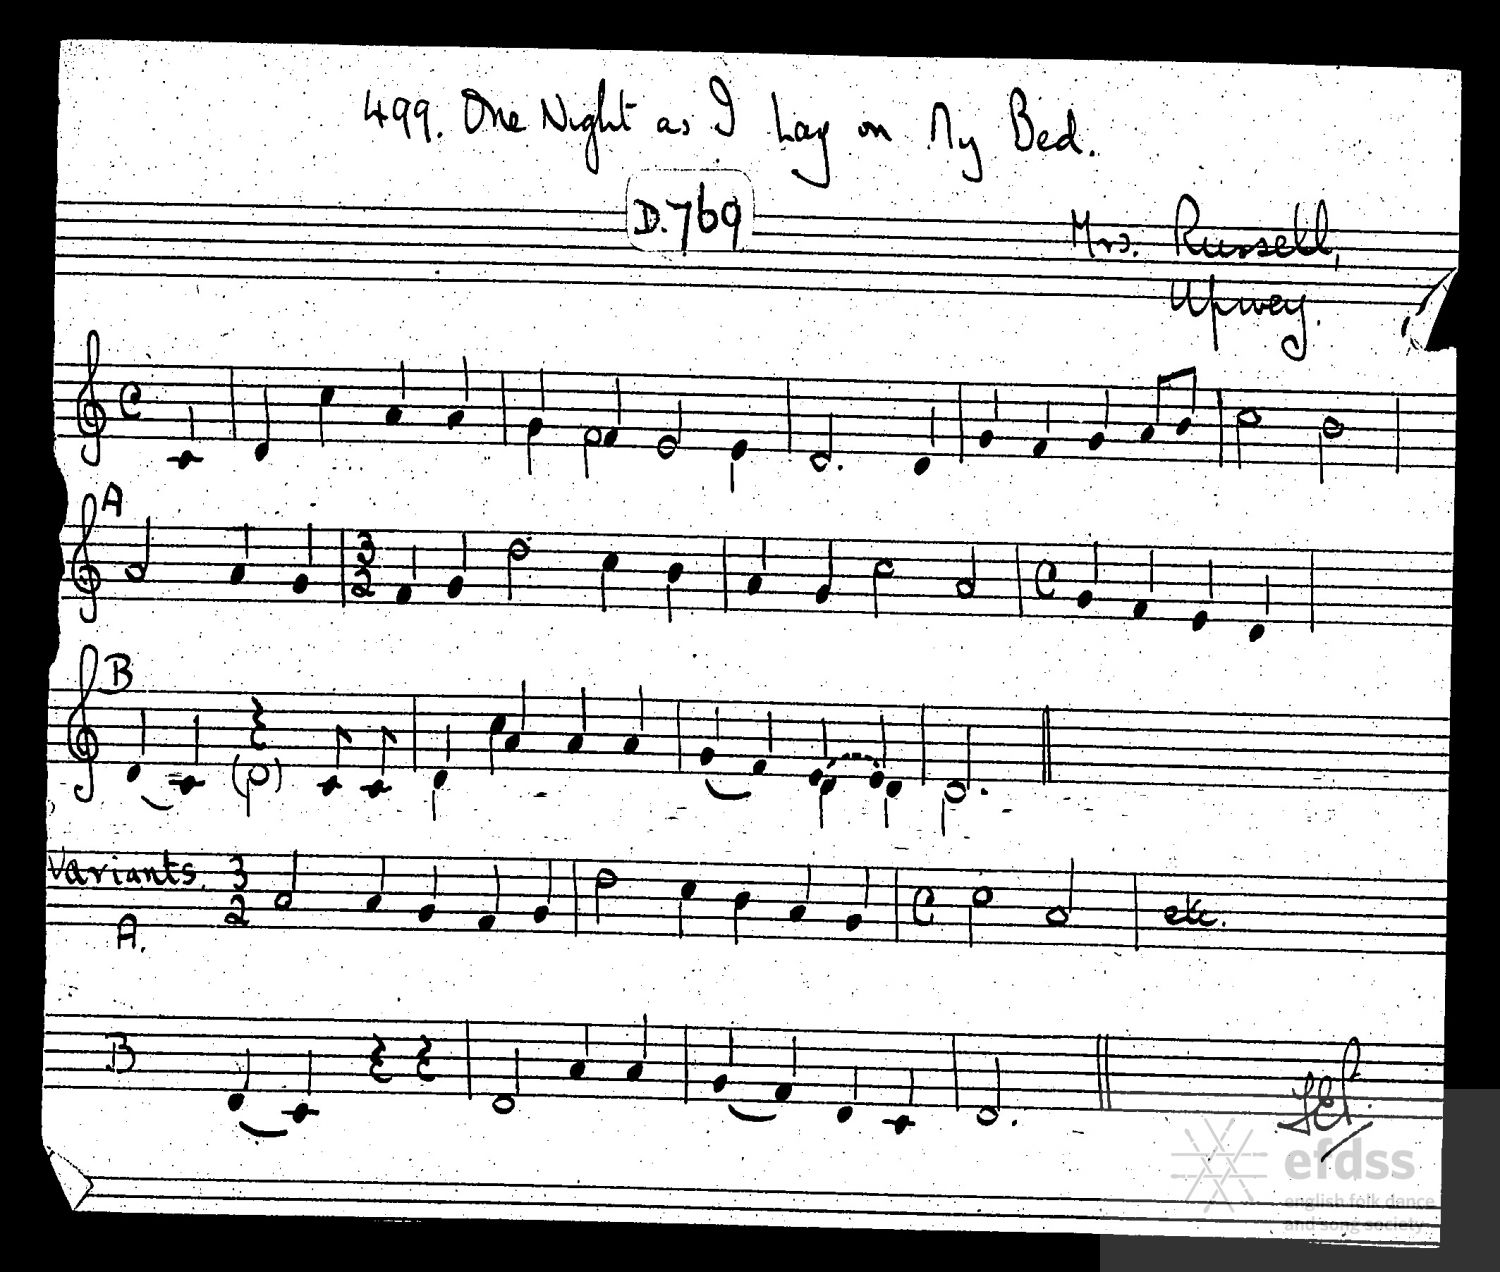 One Night As I Lay On My Bed, as sung by Marina Russell. From the Henry Hammond Manuscript Collection via the Full English.